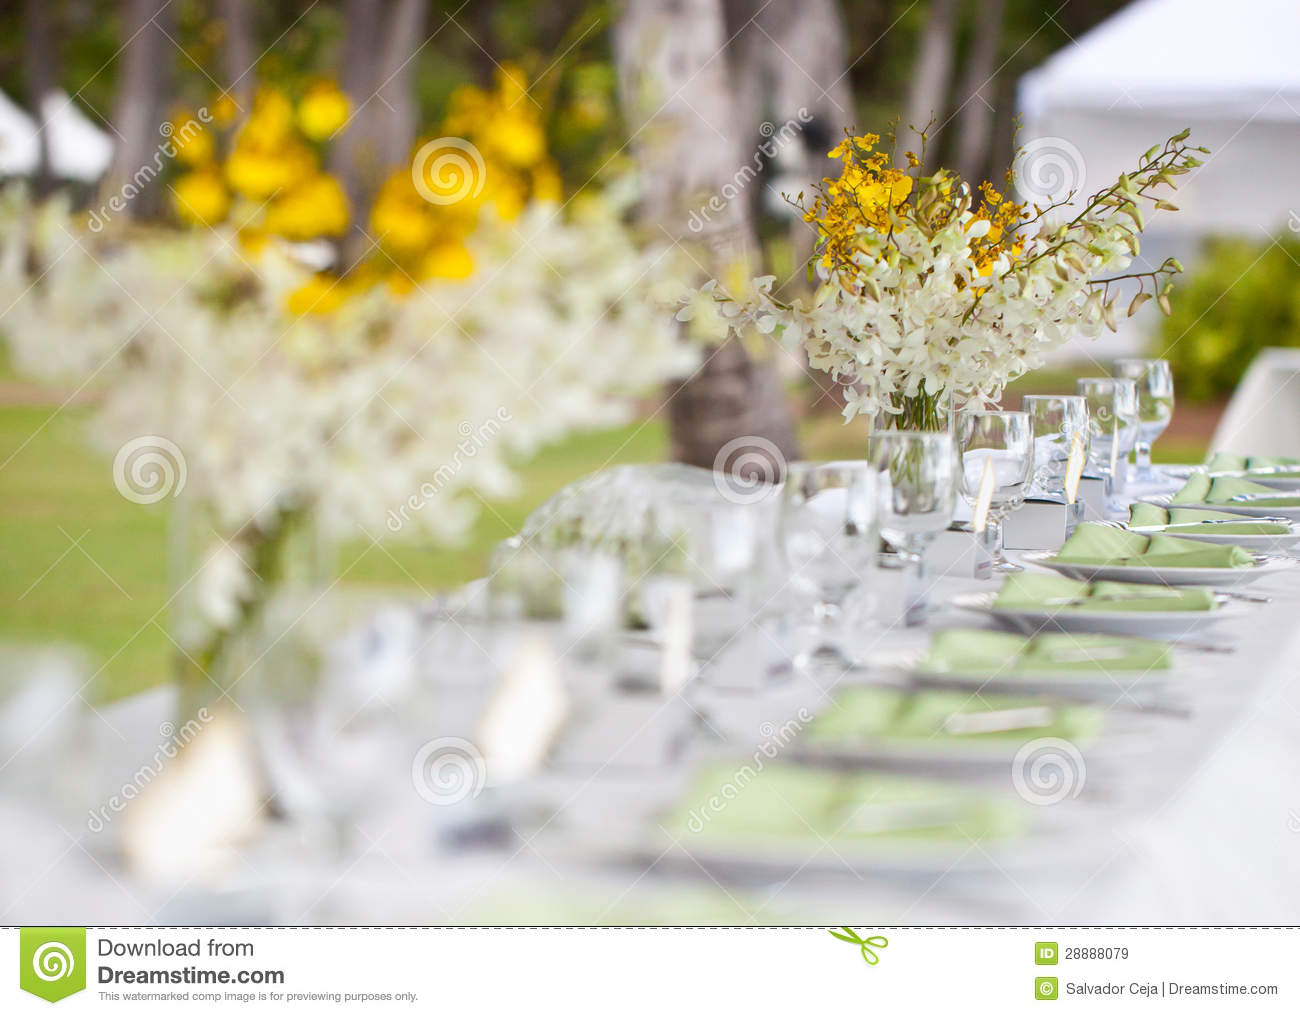 Beach wedding decor table setting and flowers stock image image of beach wedding decor table setting and flowers chair beautiful junglespirit Gallery